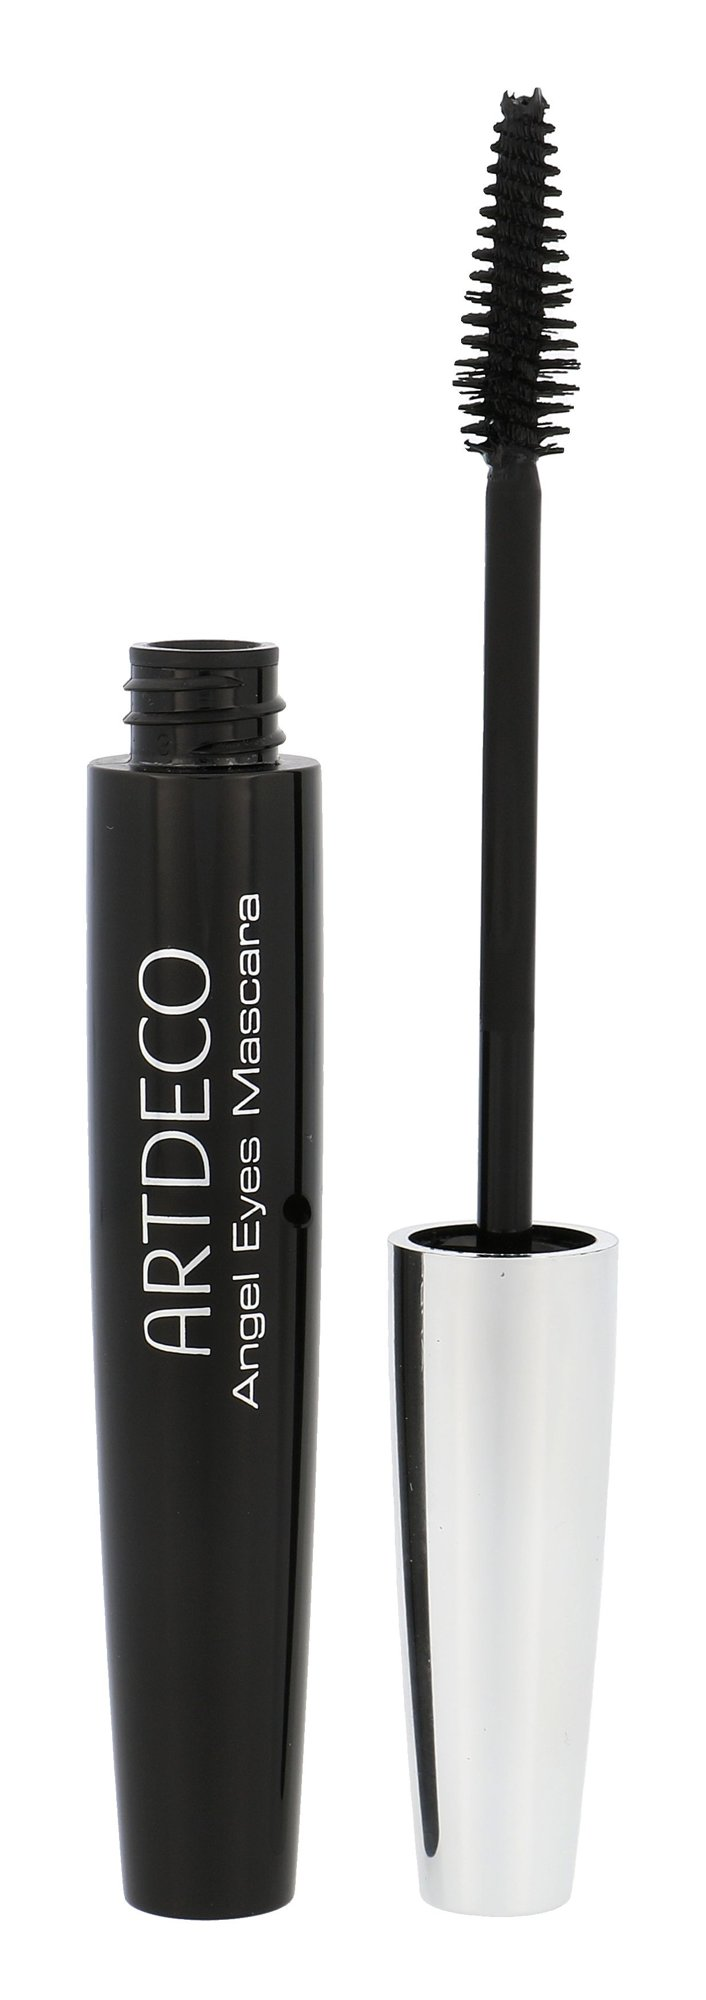 Artdeco Angel Eyes Cosmetic 10ml 1 Black